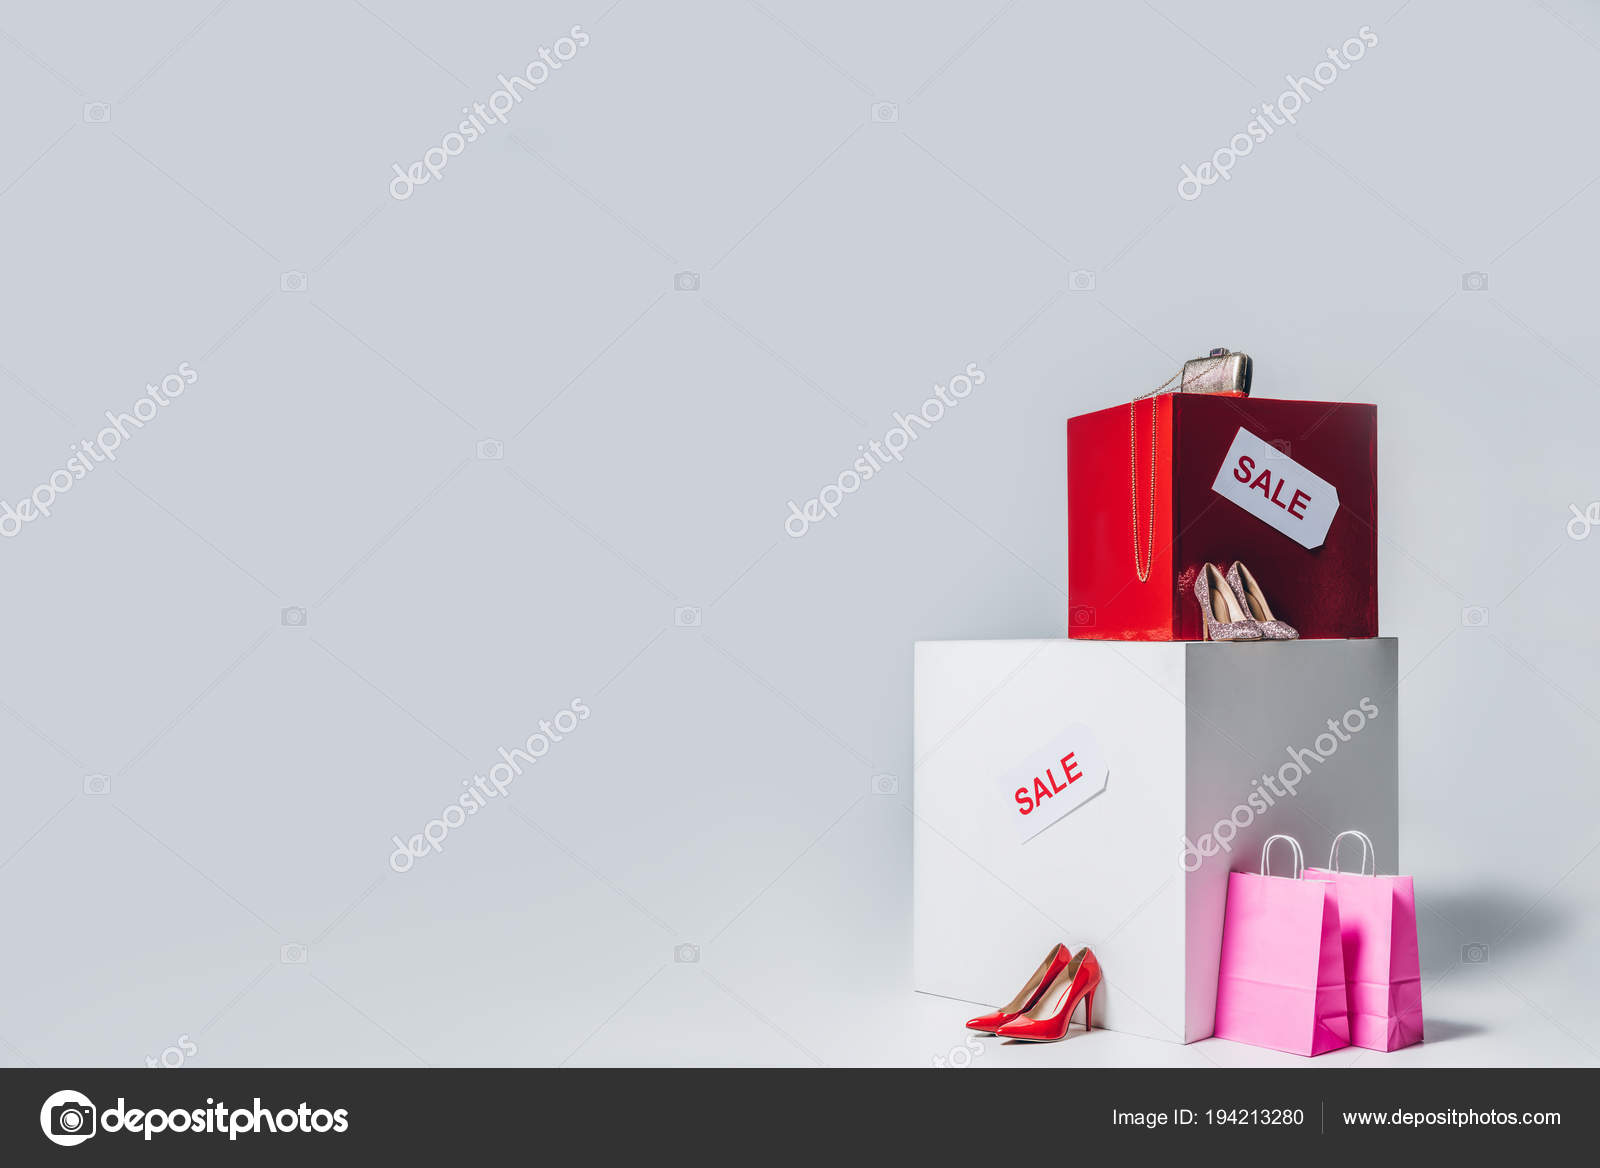 695e30de5a58 Handbag High Heels Shopping Bags Sale Signs Summer Sale Concept — Stock  Photo